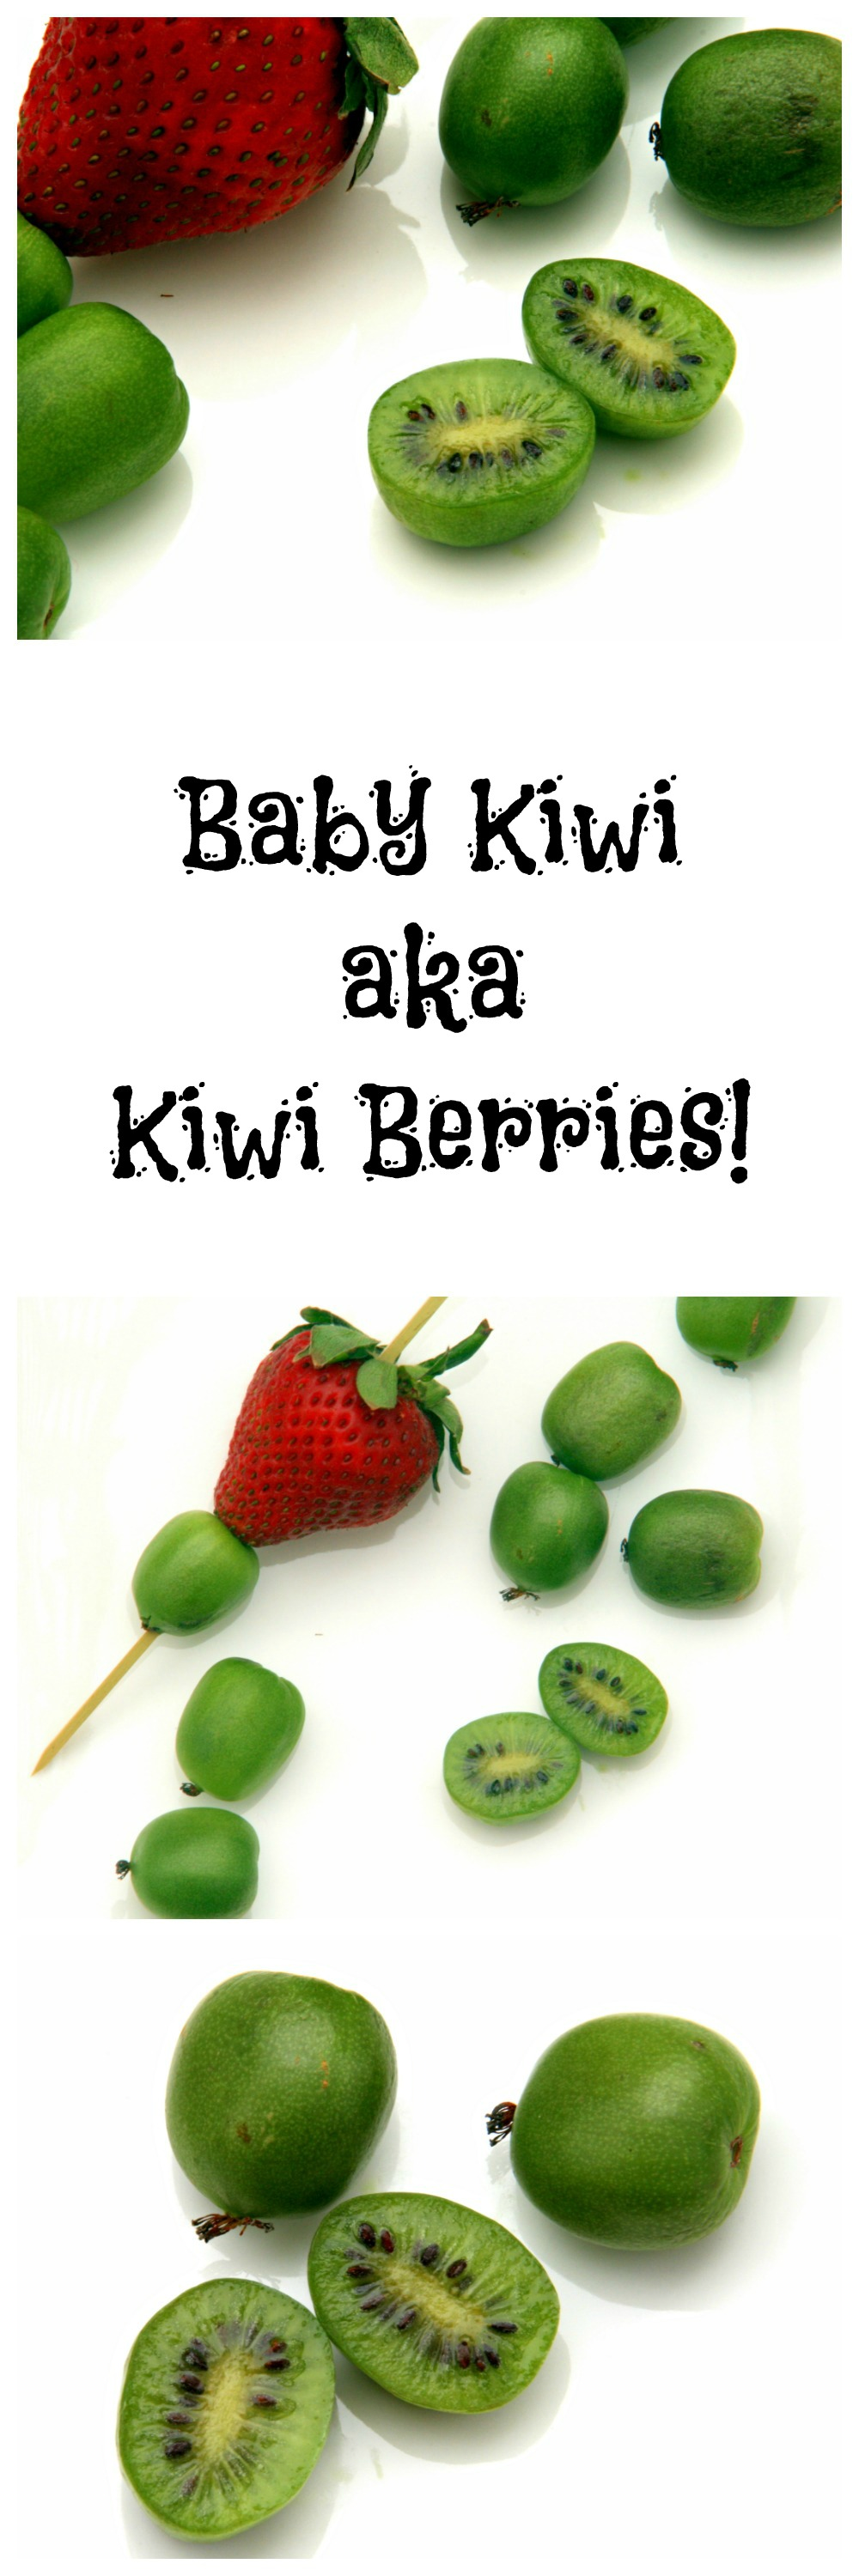 baby-kiwi-aka-kiwi-berries-on-shockinglydelicious-com